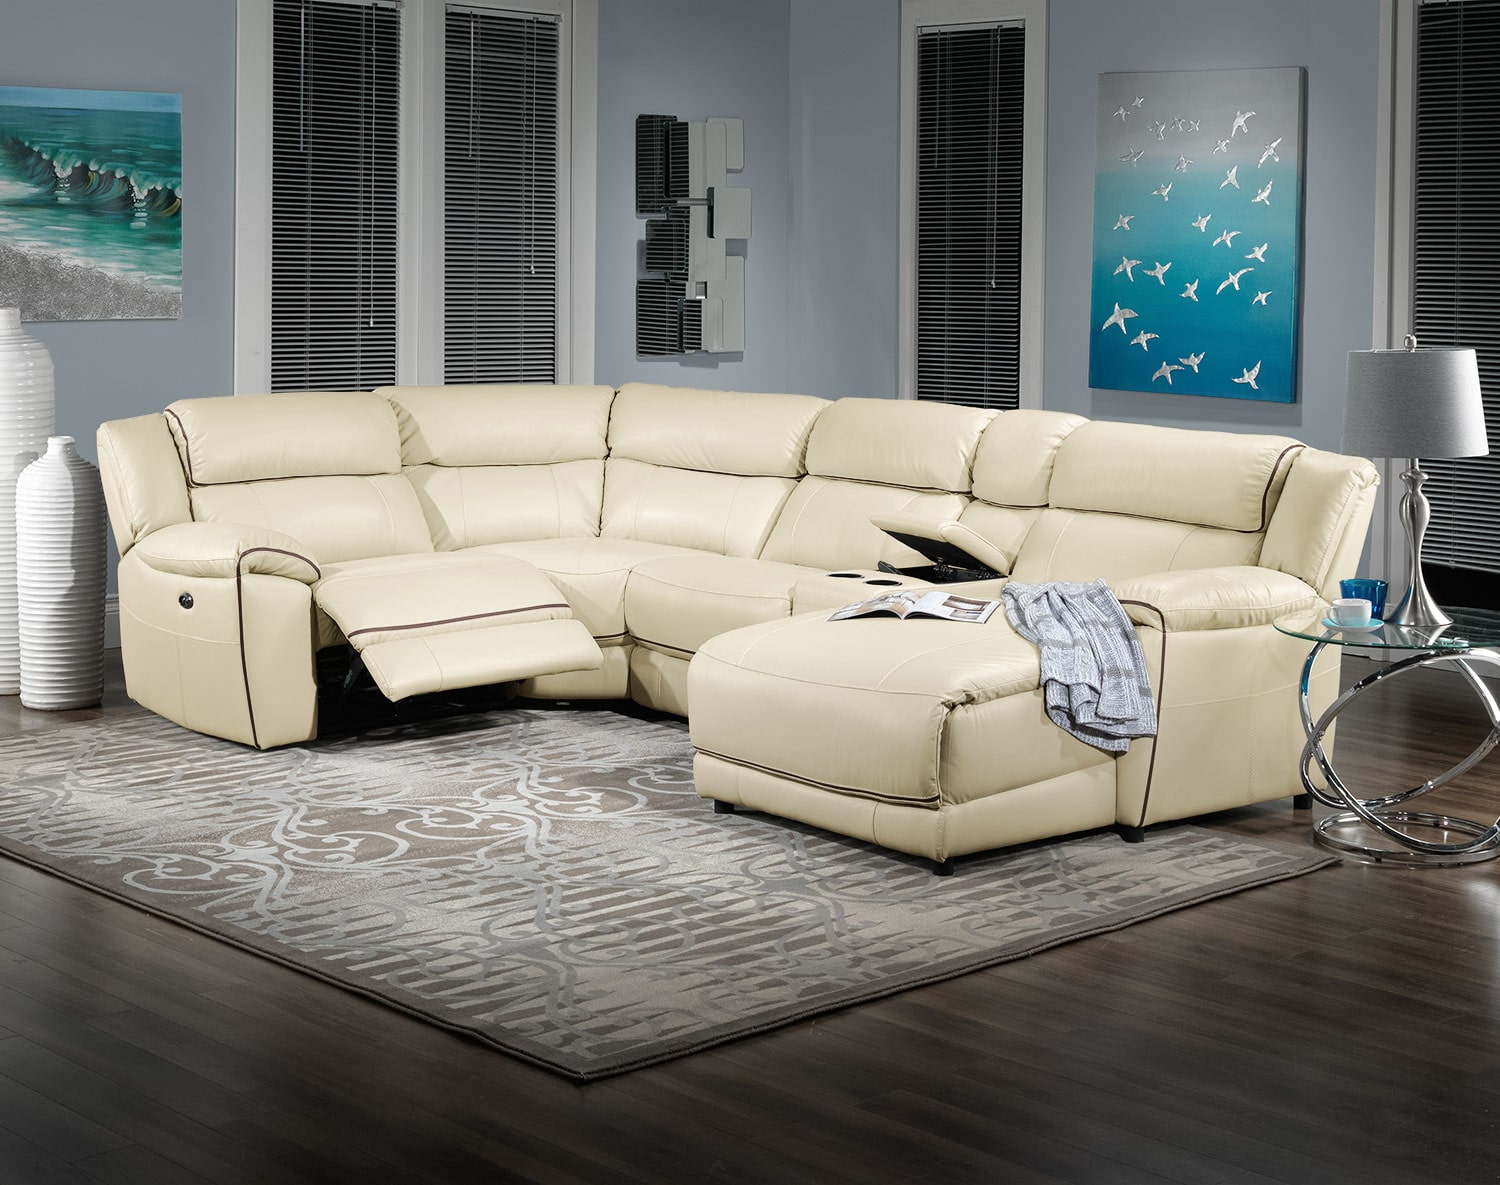 The Holton Collection - Pebble